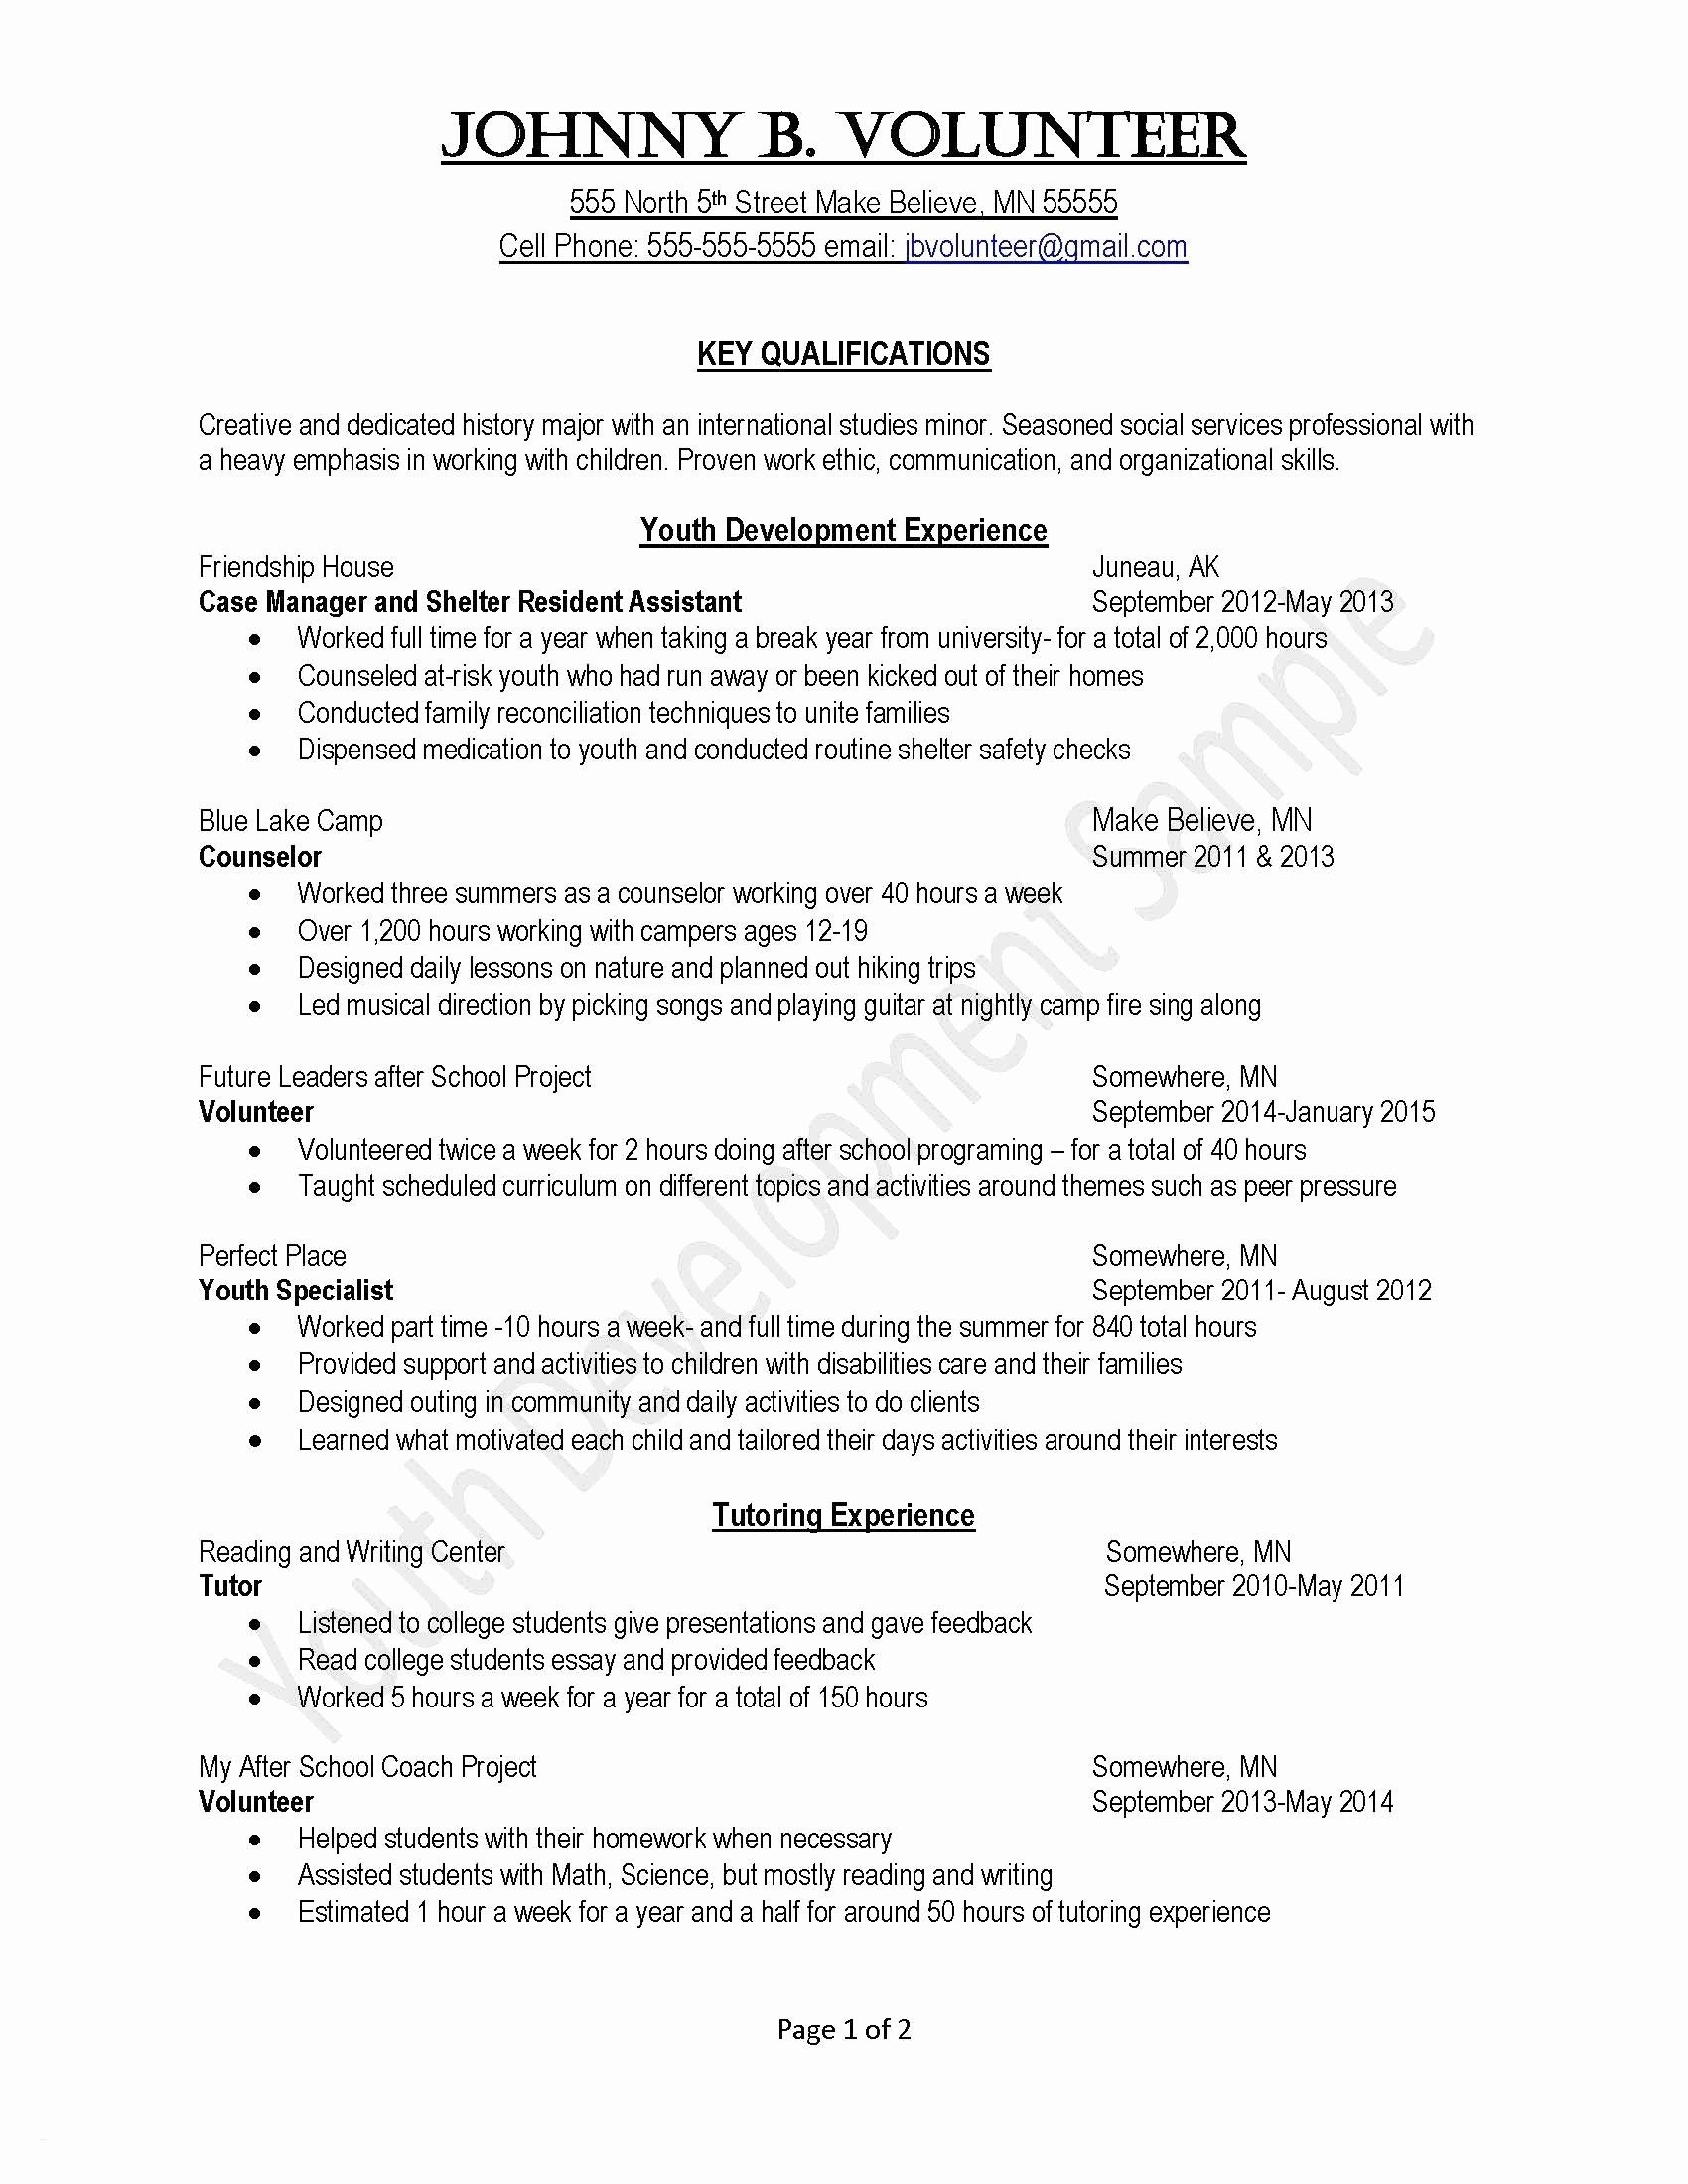 Cv Template For Over 40 Resume Examples Business Proposal Template Cover Letter For Resume Free Printable Resume